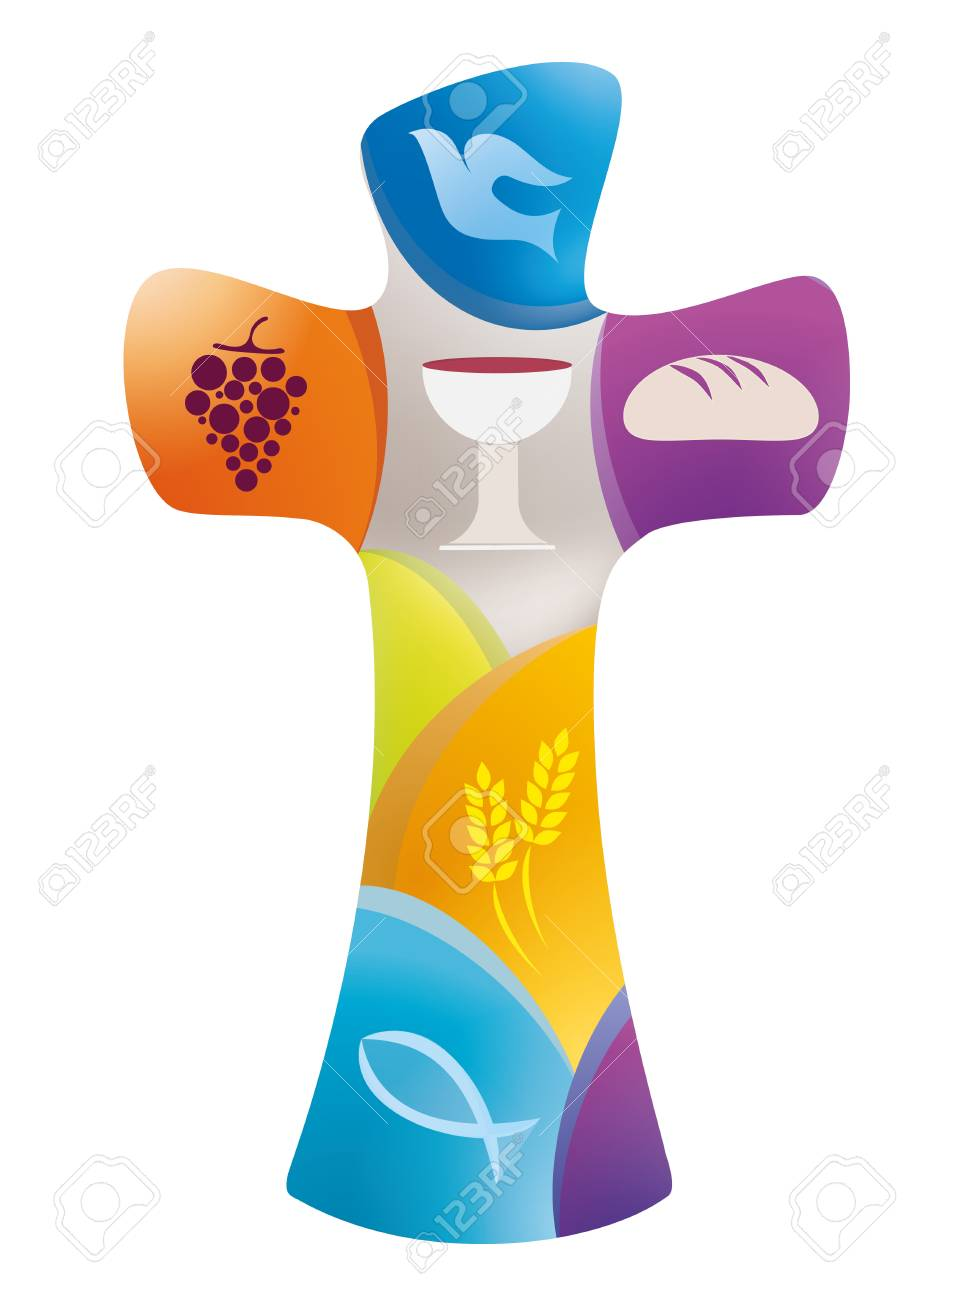 Christian cross with dove, grape, chalice, bread, ears of wheat and fish on colored background - 103326811